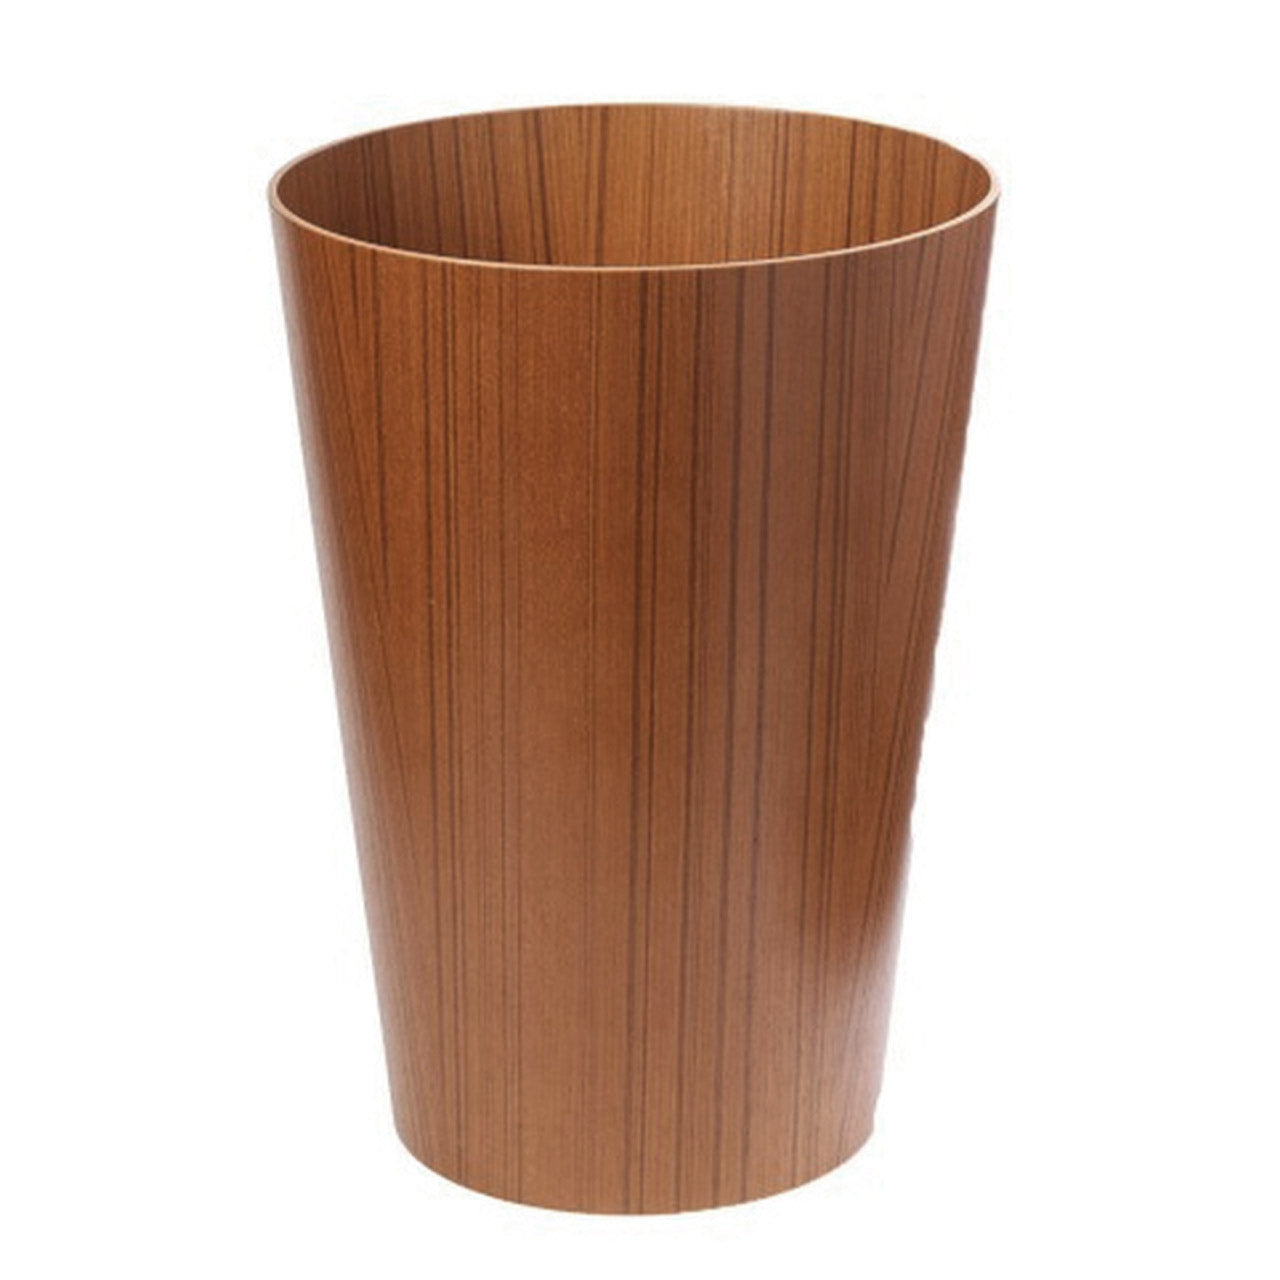 WOOD WASTE BASKET - AYOUS TEAK